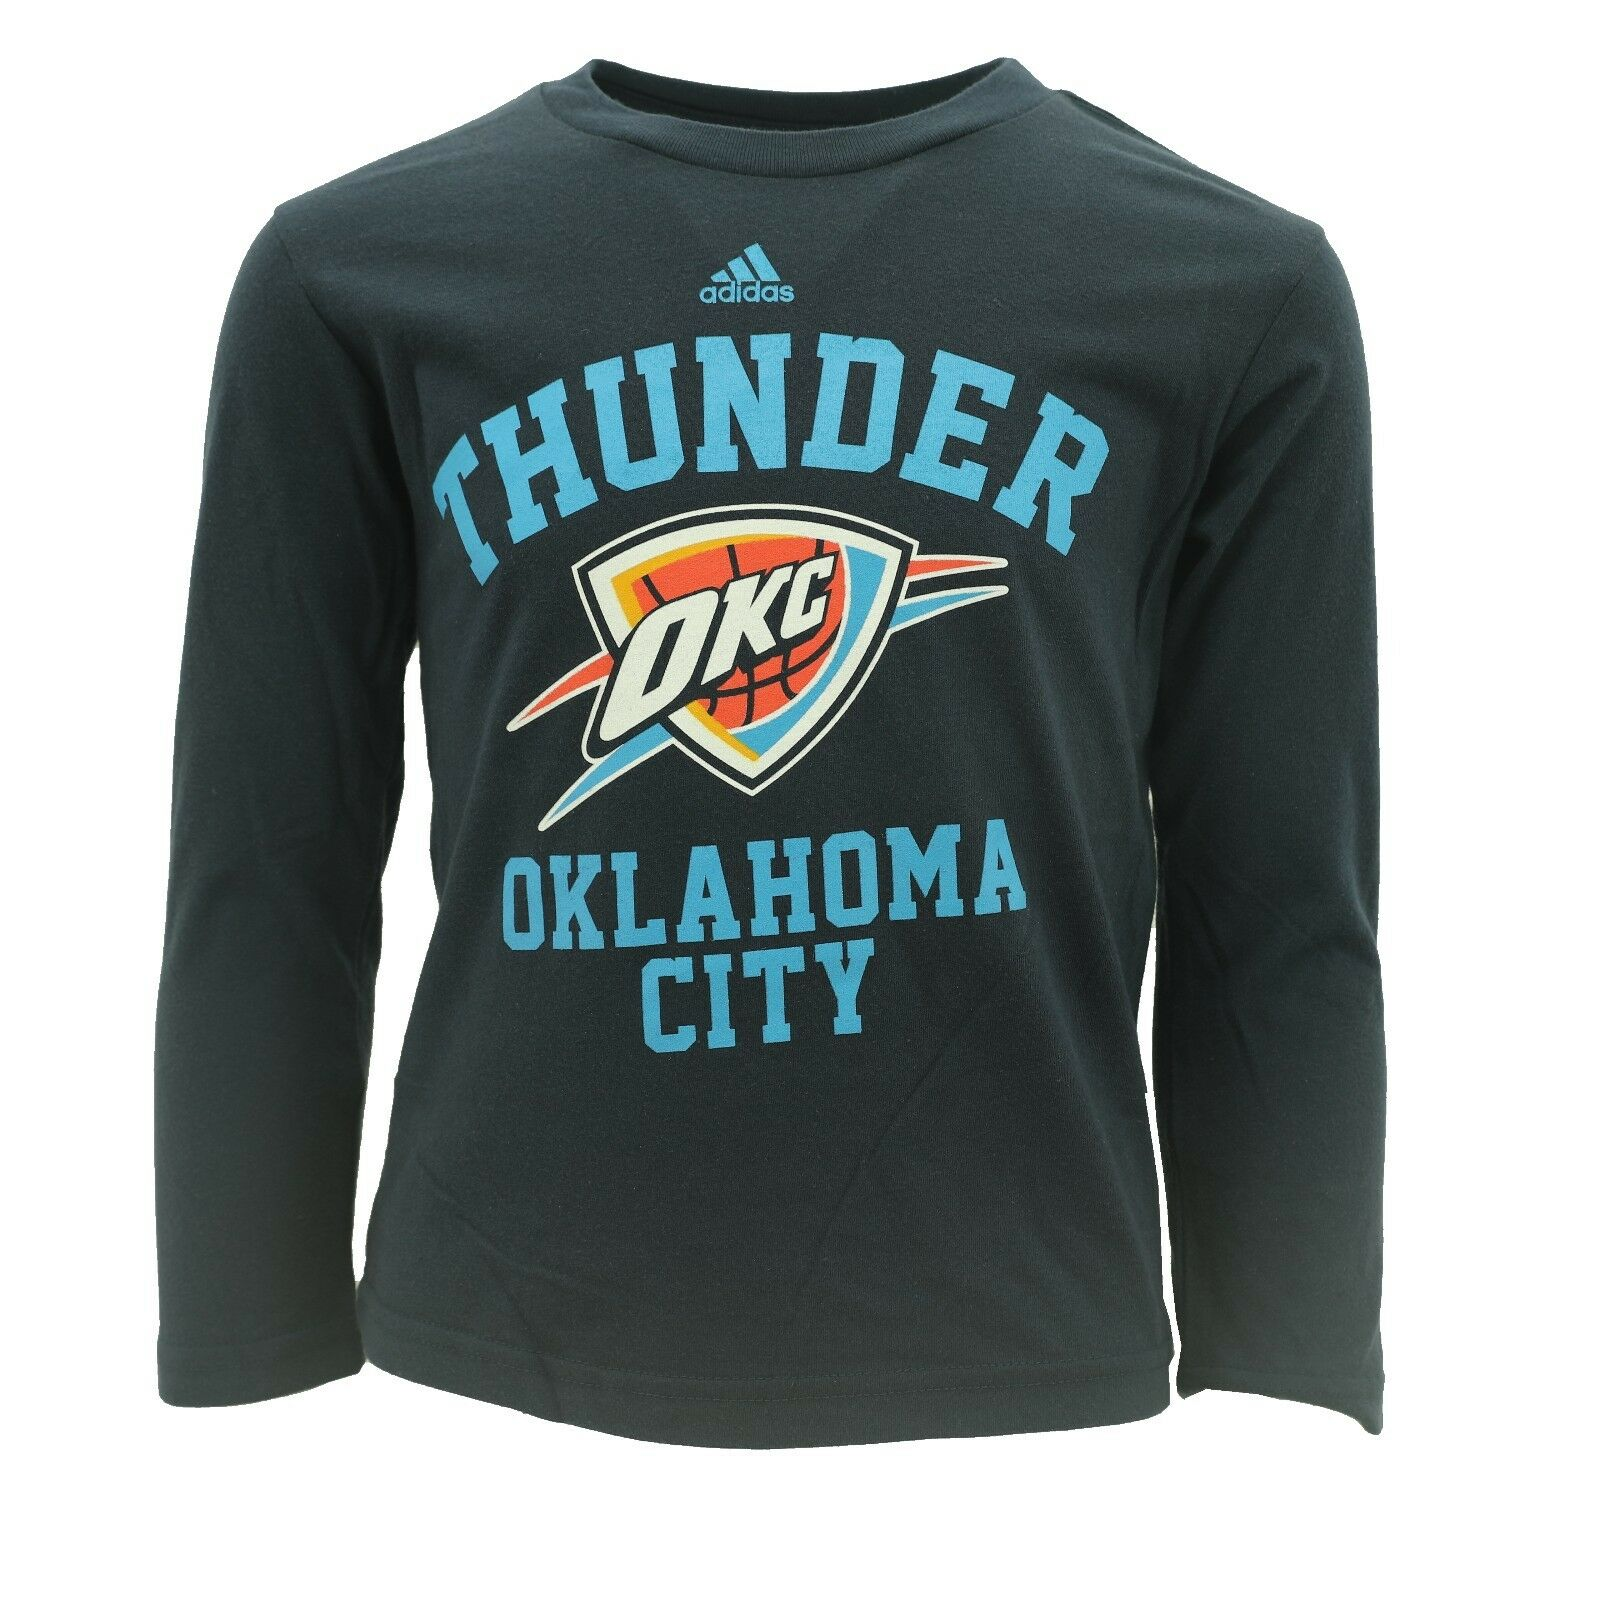 8d4d93b0f Oklahoma City Thunder Youth Kids Size Official NBA Adidas Long Sleeve Shirt  New